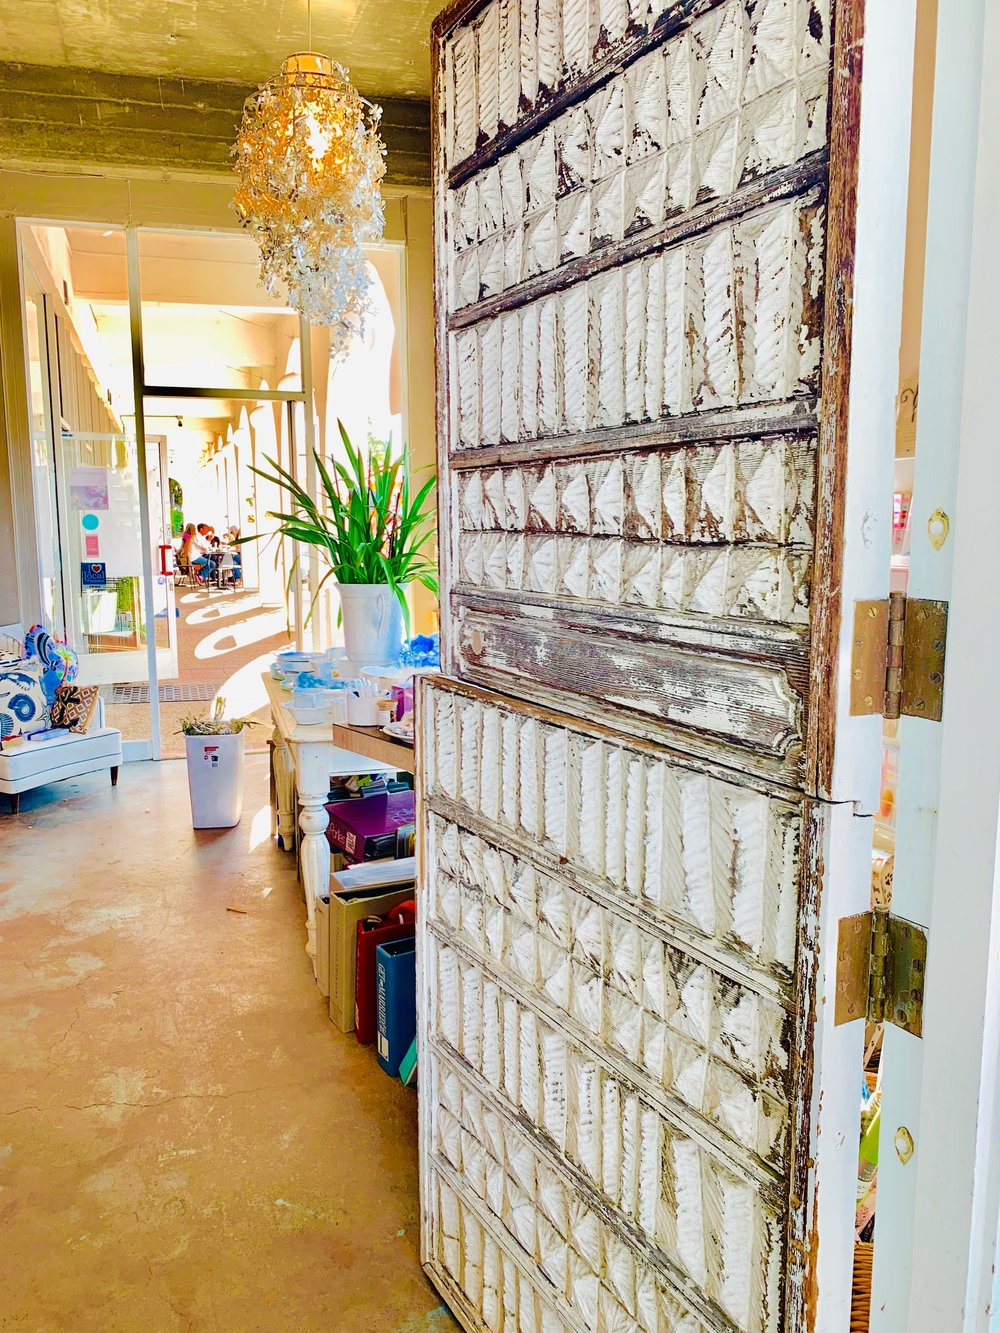 Inside the boutique